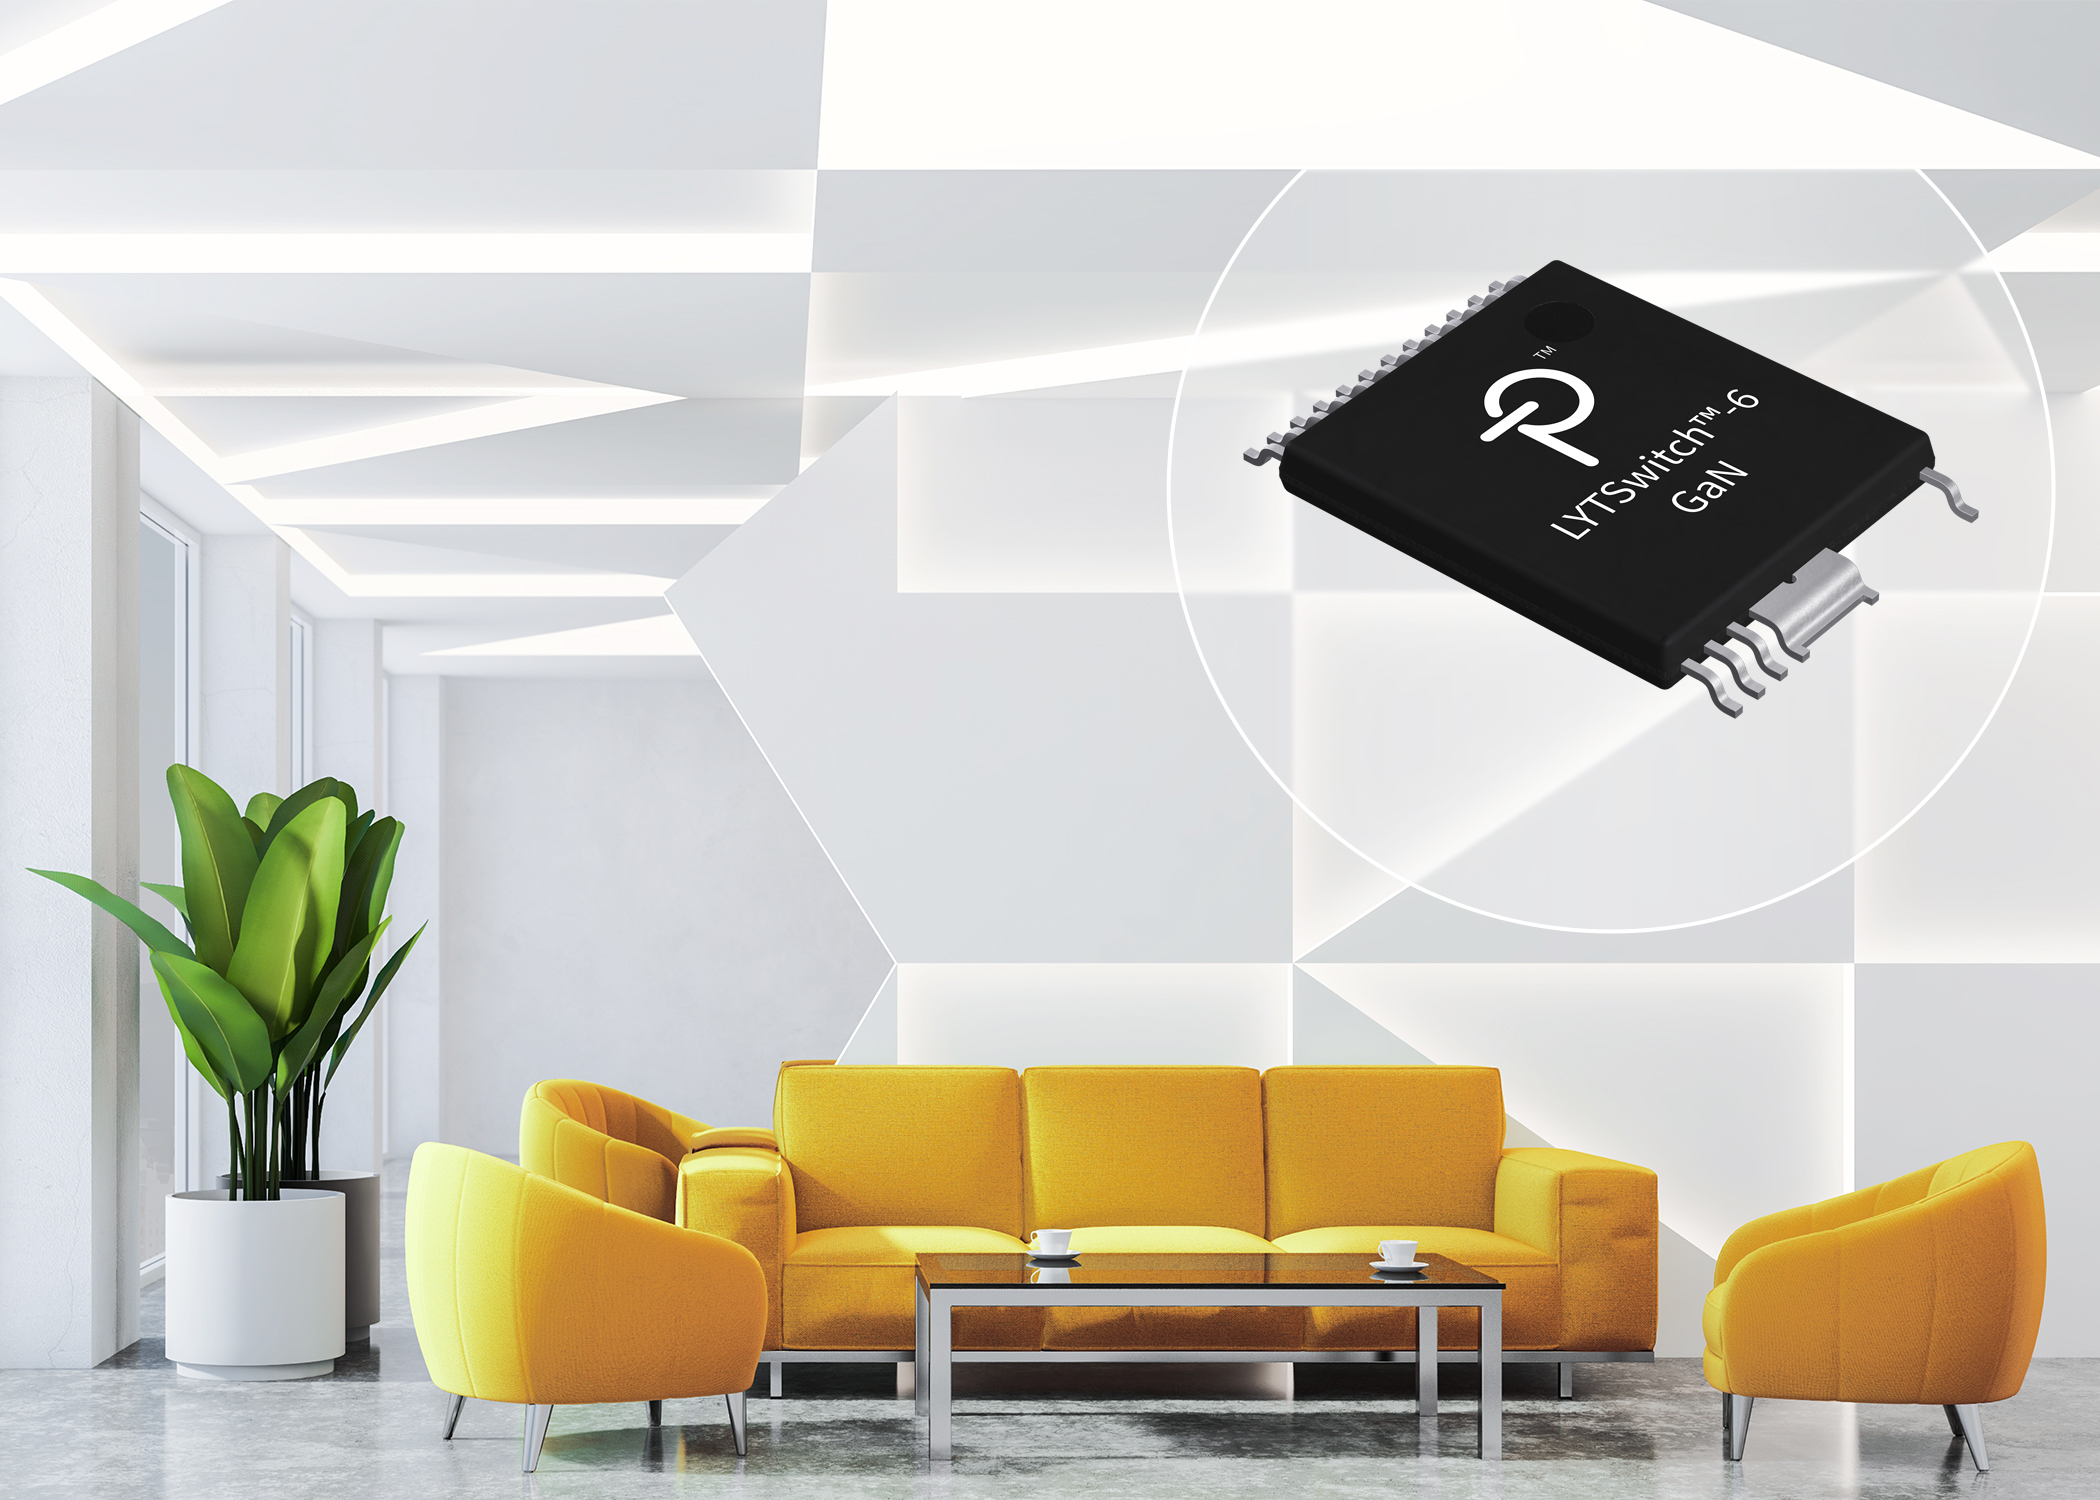 LED Drivers Deliver Industry-Leading Power Density